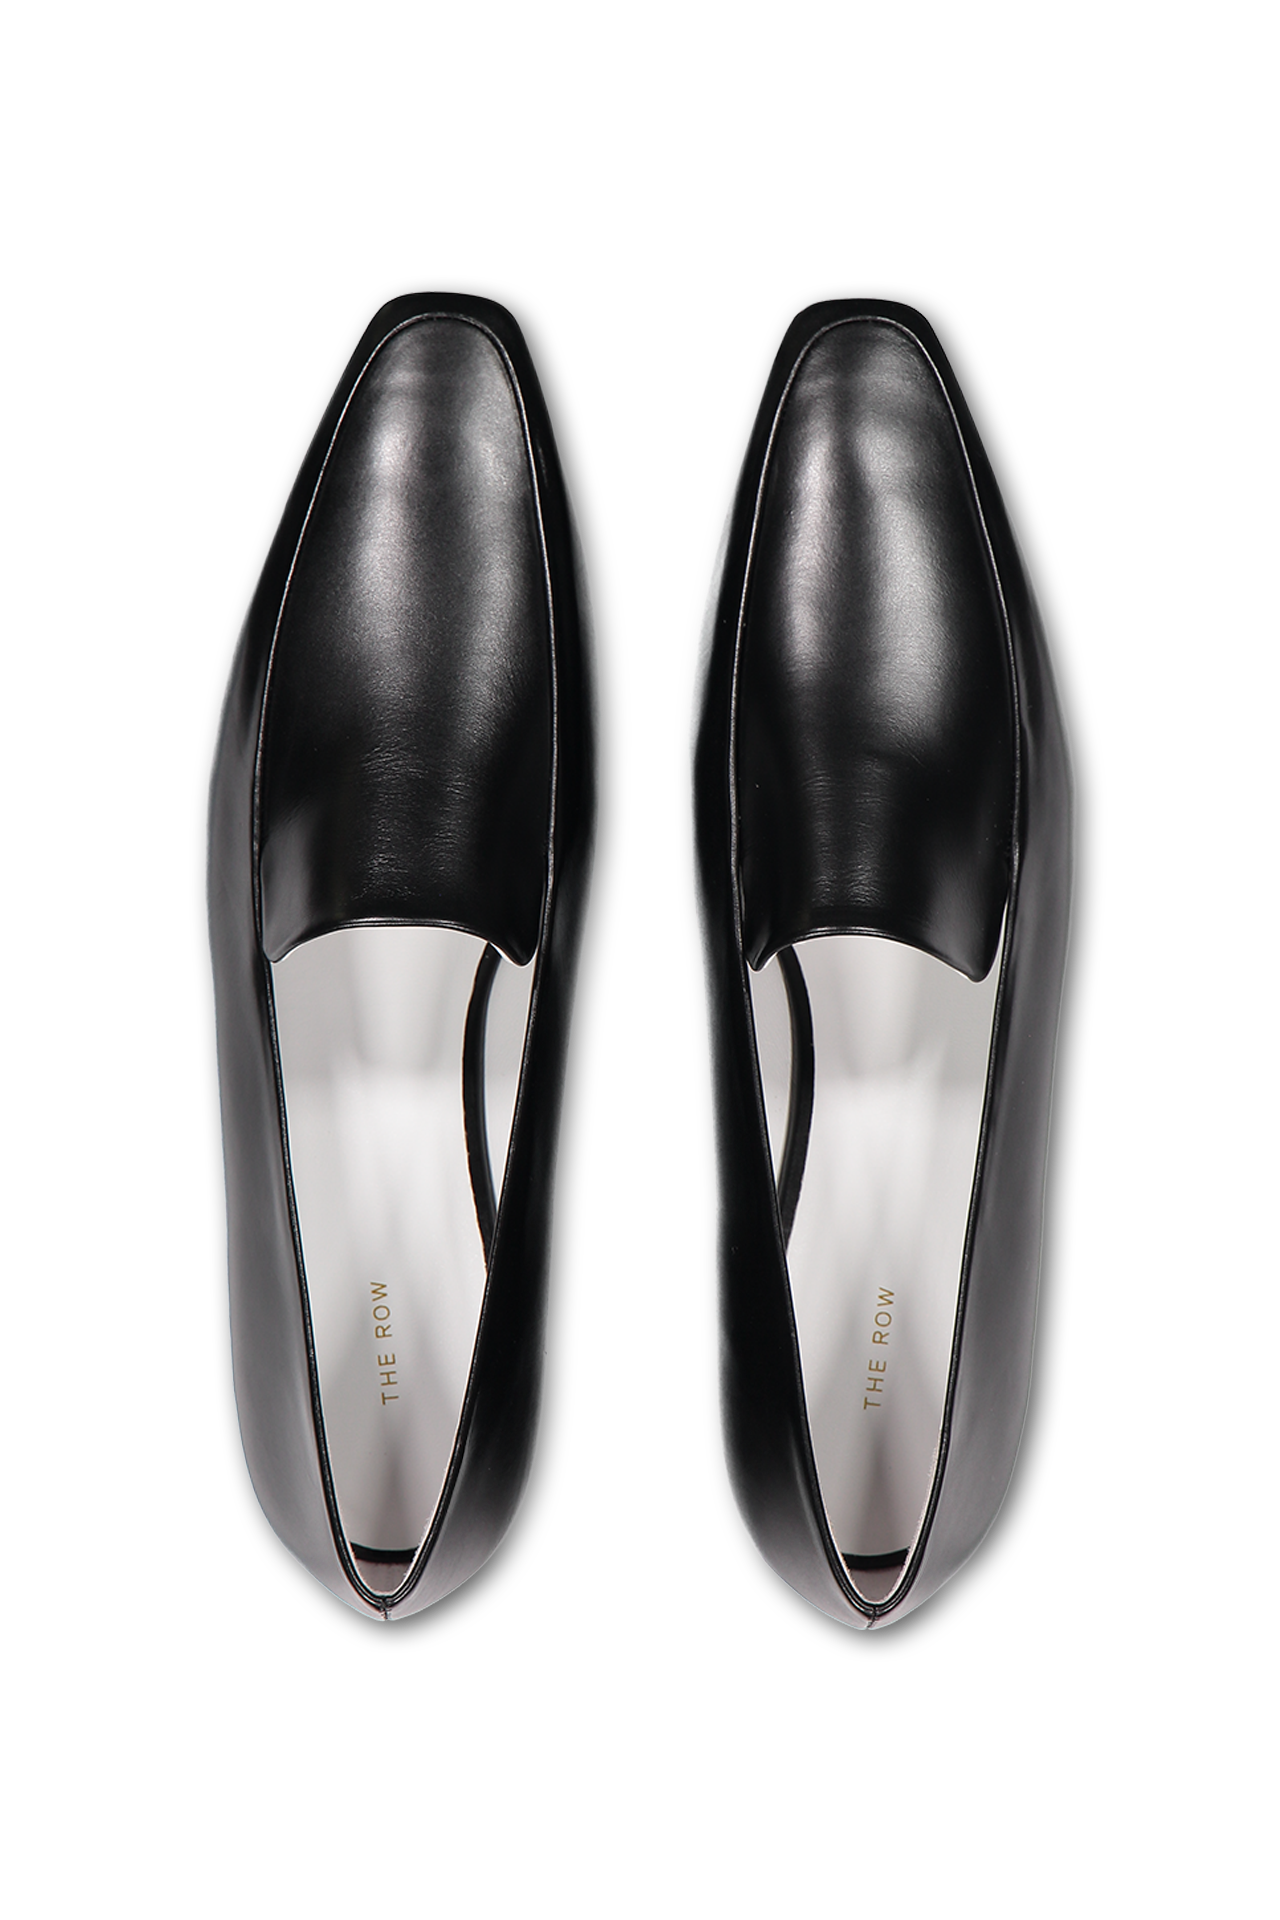 THE ROW - just because it's the holidays doesn't mean gift giving has to be impractical. I love the thought that goes into a practical gift — like these perfect minimal leather loafers.